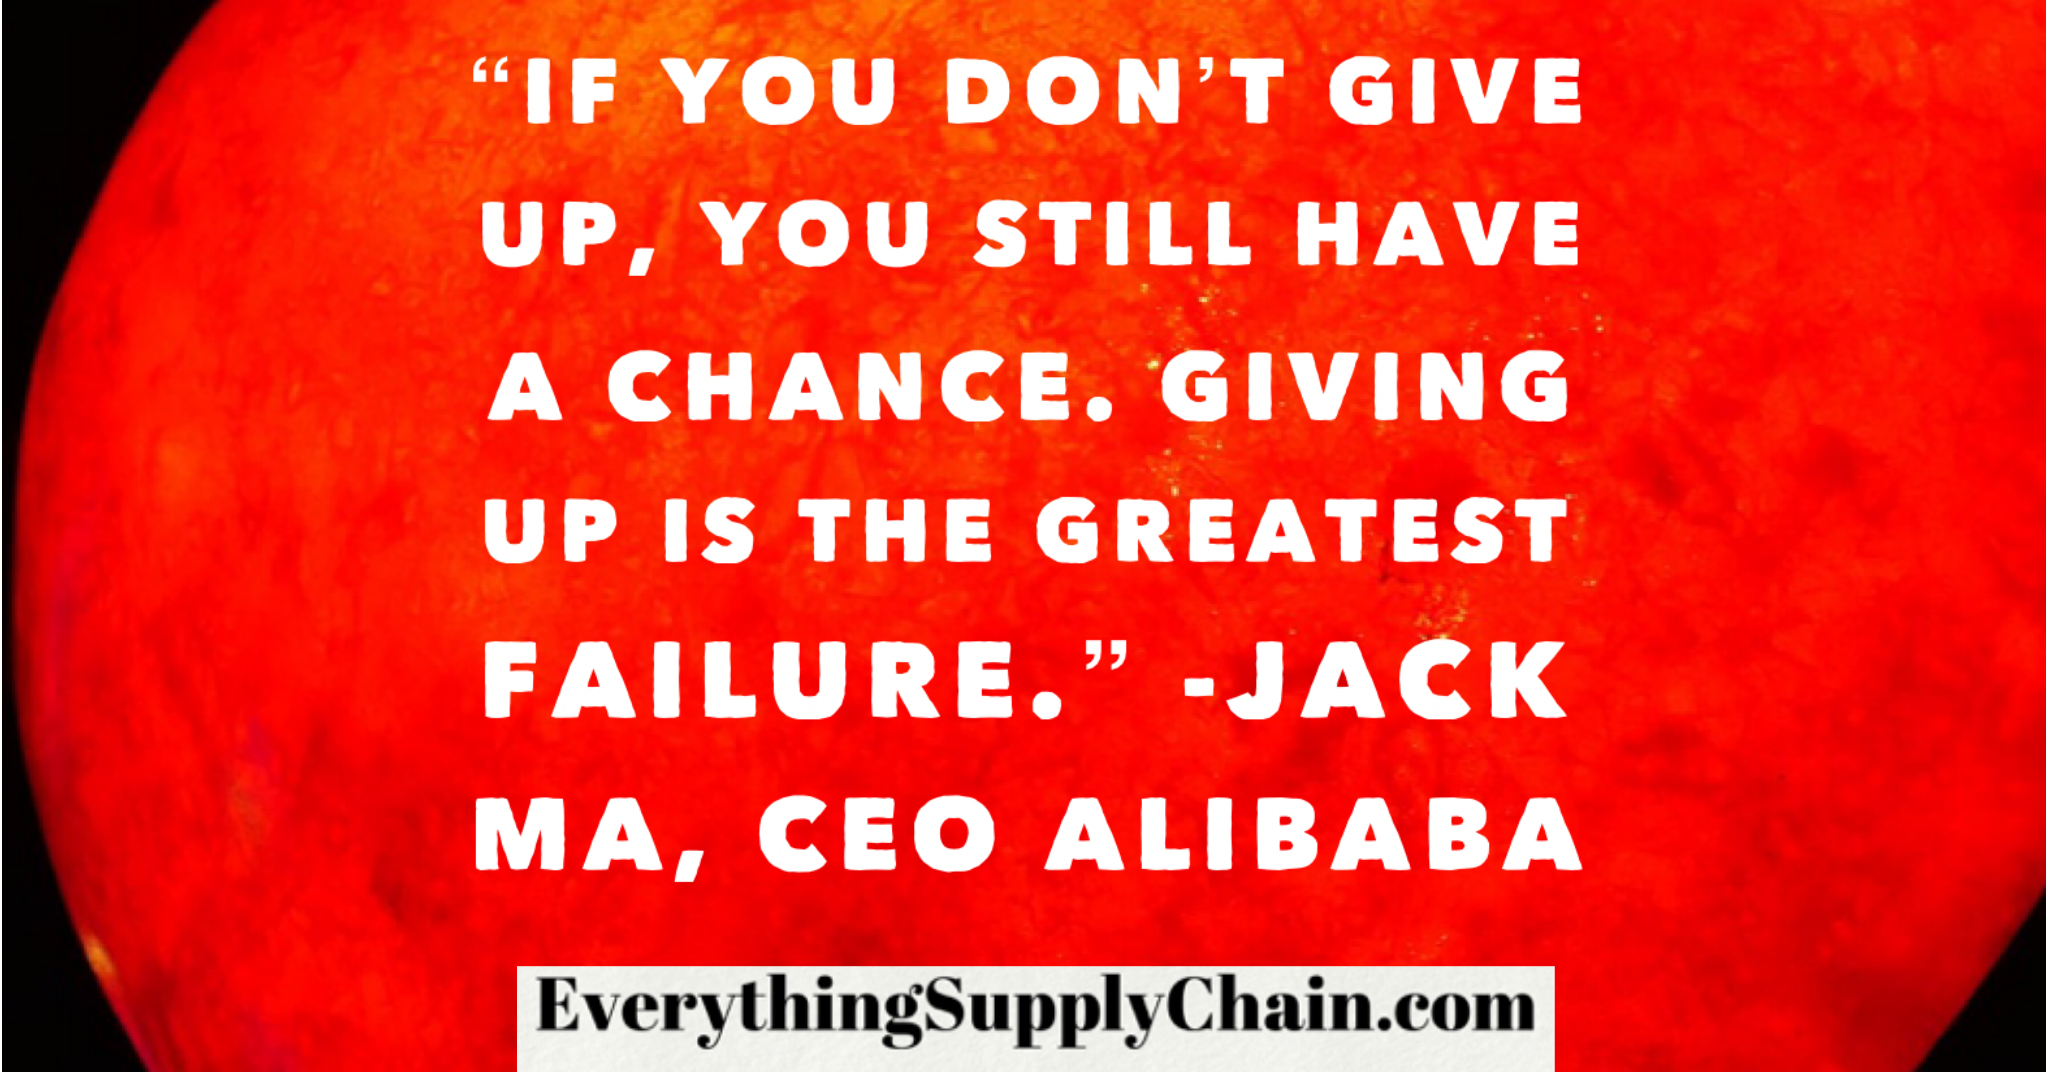 The Alibaba Supply Chain